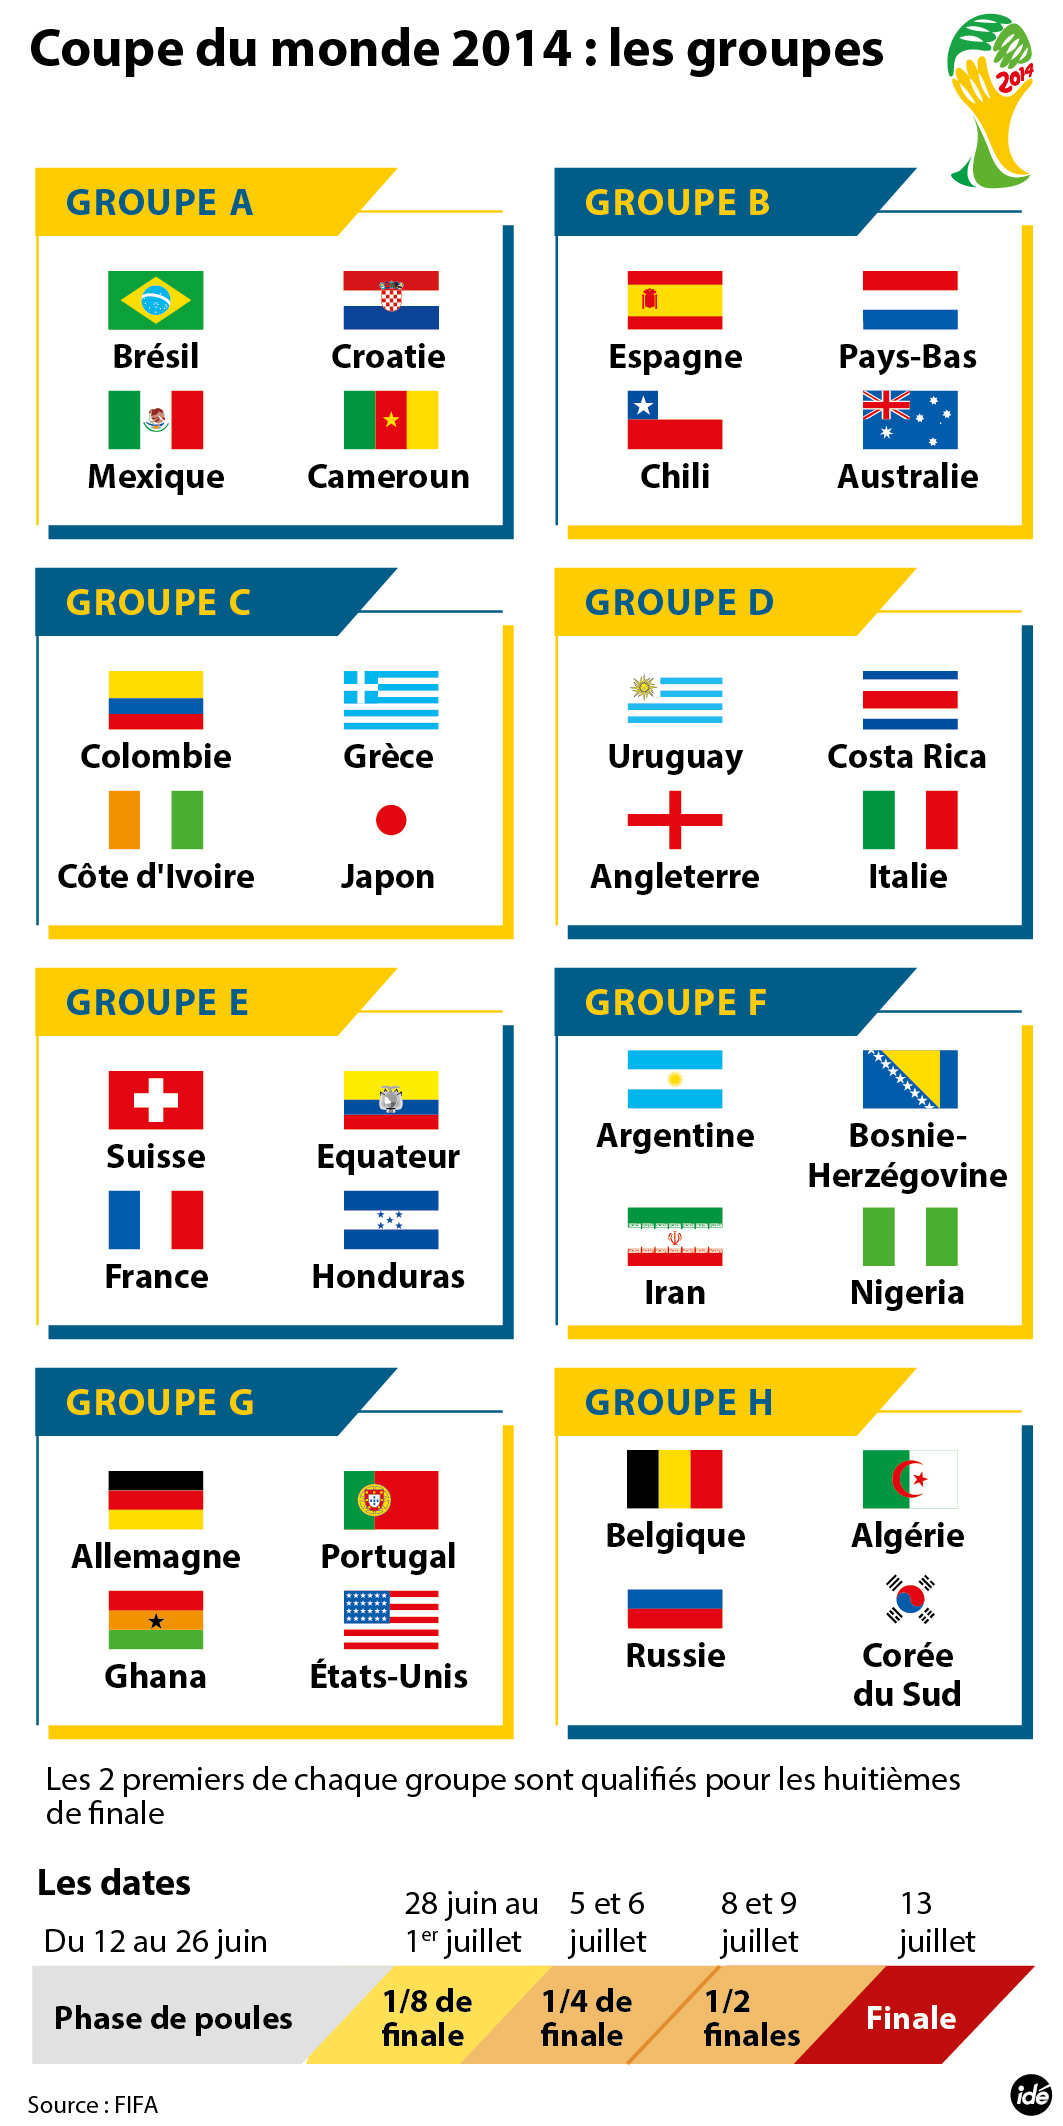 IDE-football-coupe-du-monde-2014-groupes.jpg